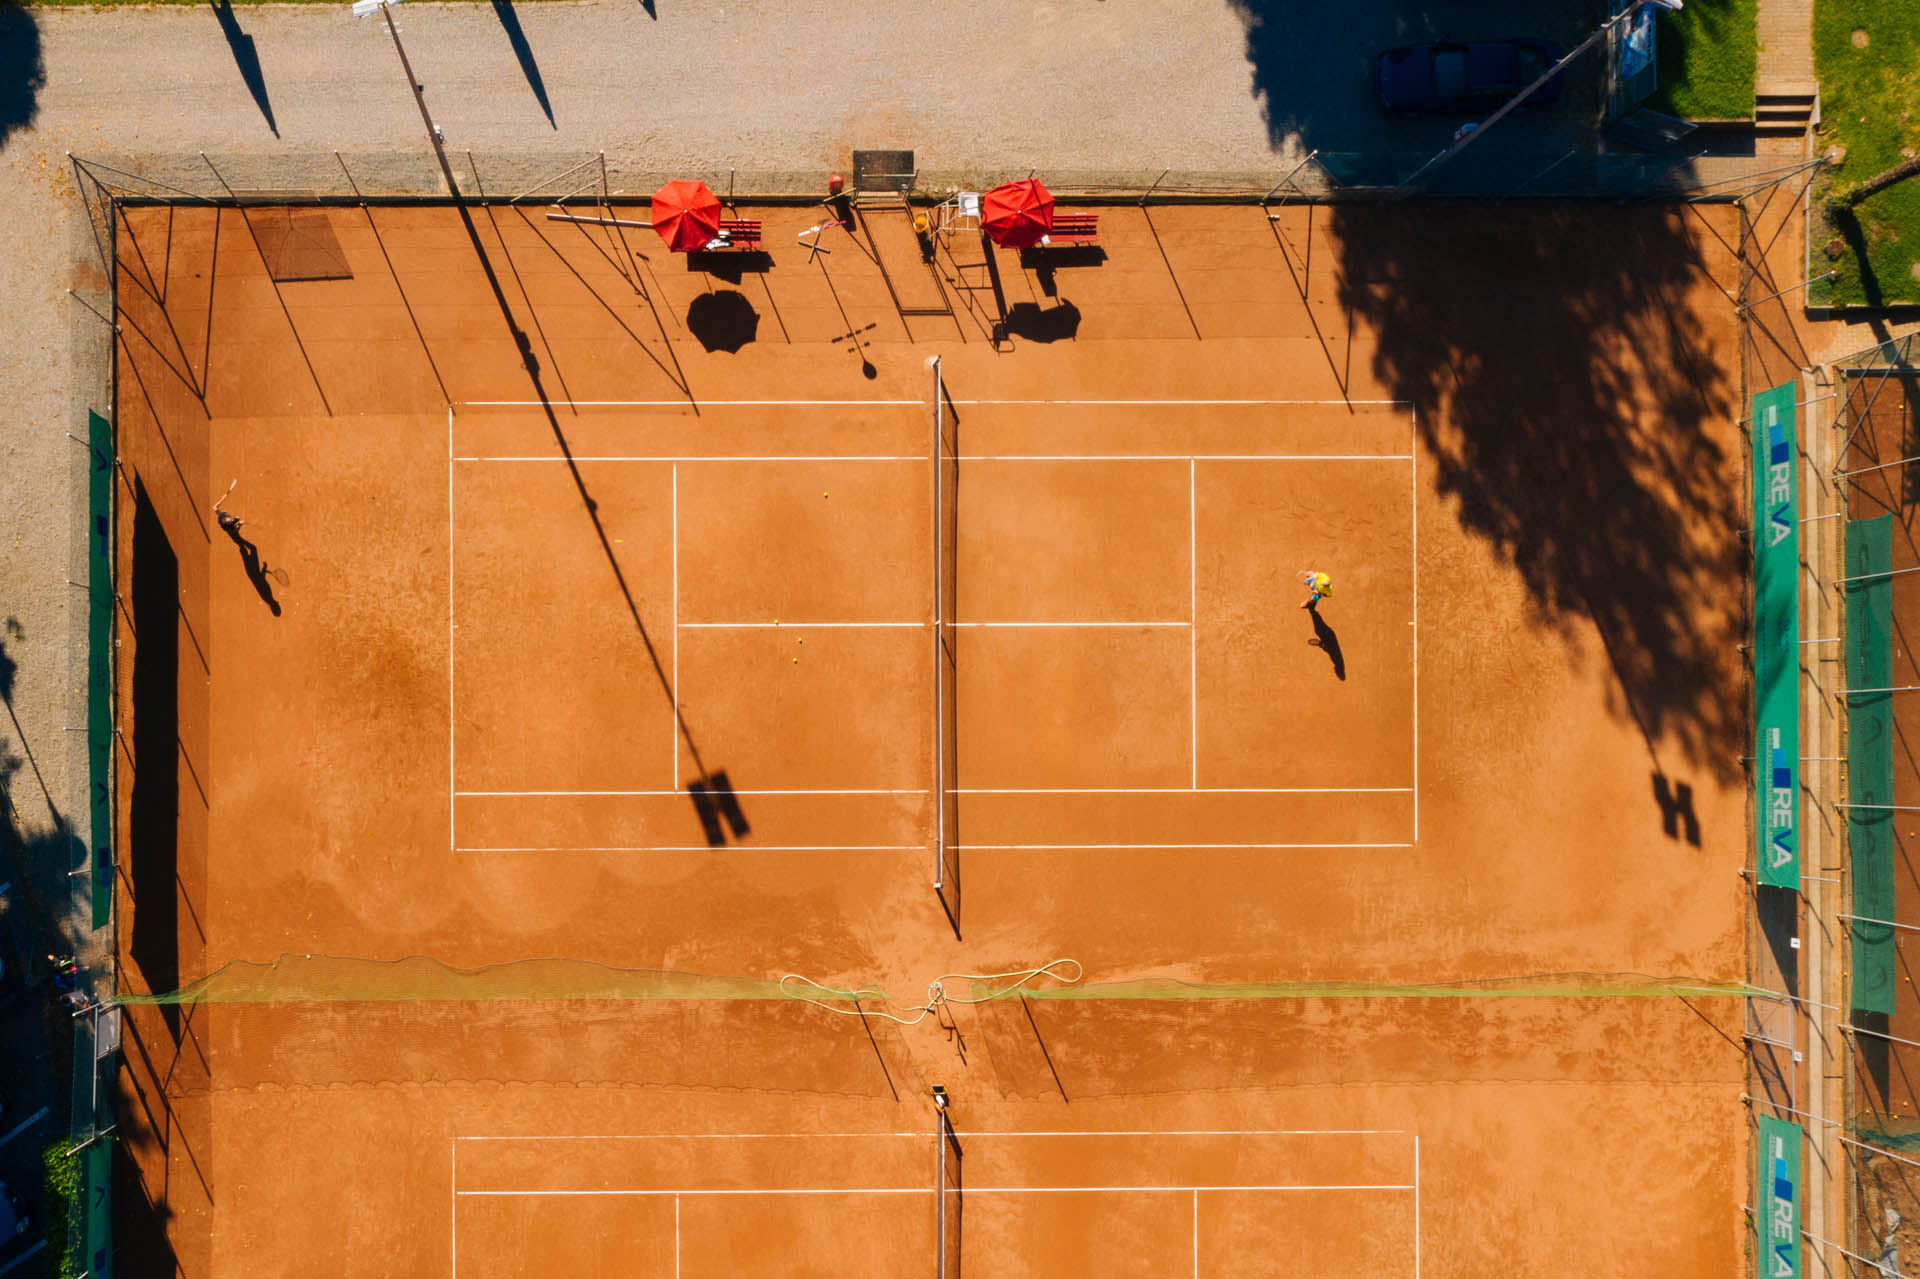 Sport and leisure, Tennis